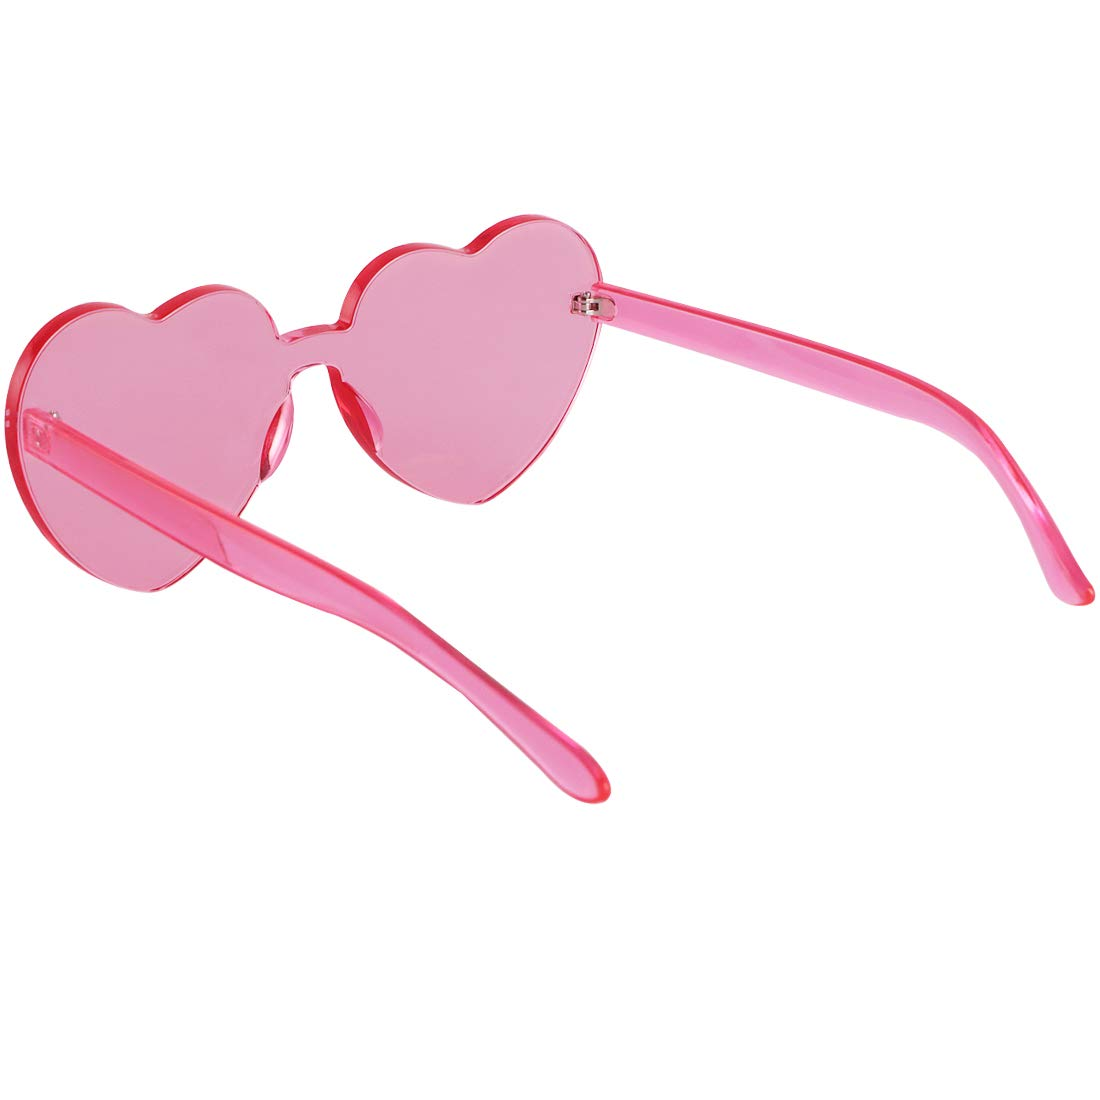 kilofly 6 Rimless One Piece Clear Candy Color Women Heart Shaped Sunglasses KTG368set6B